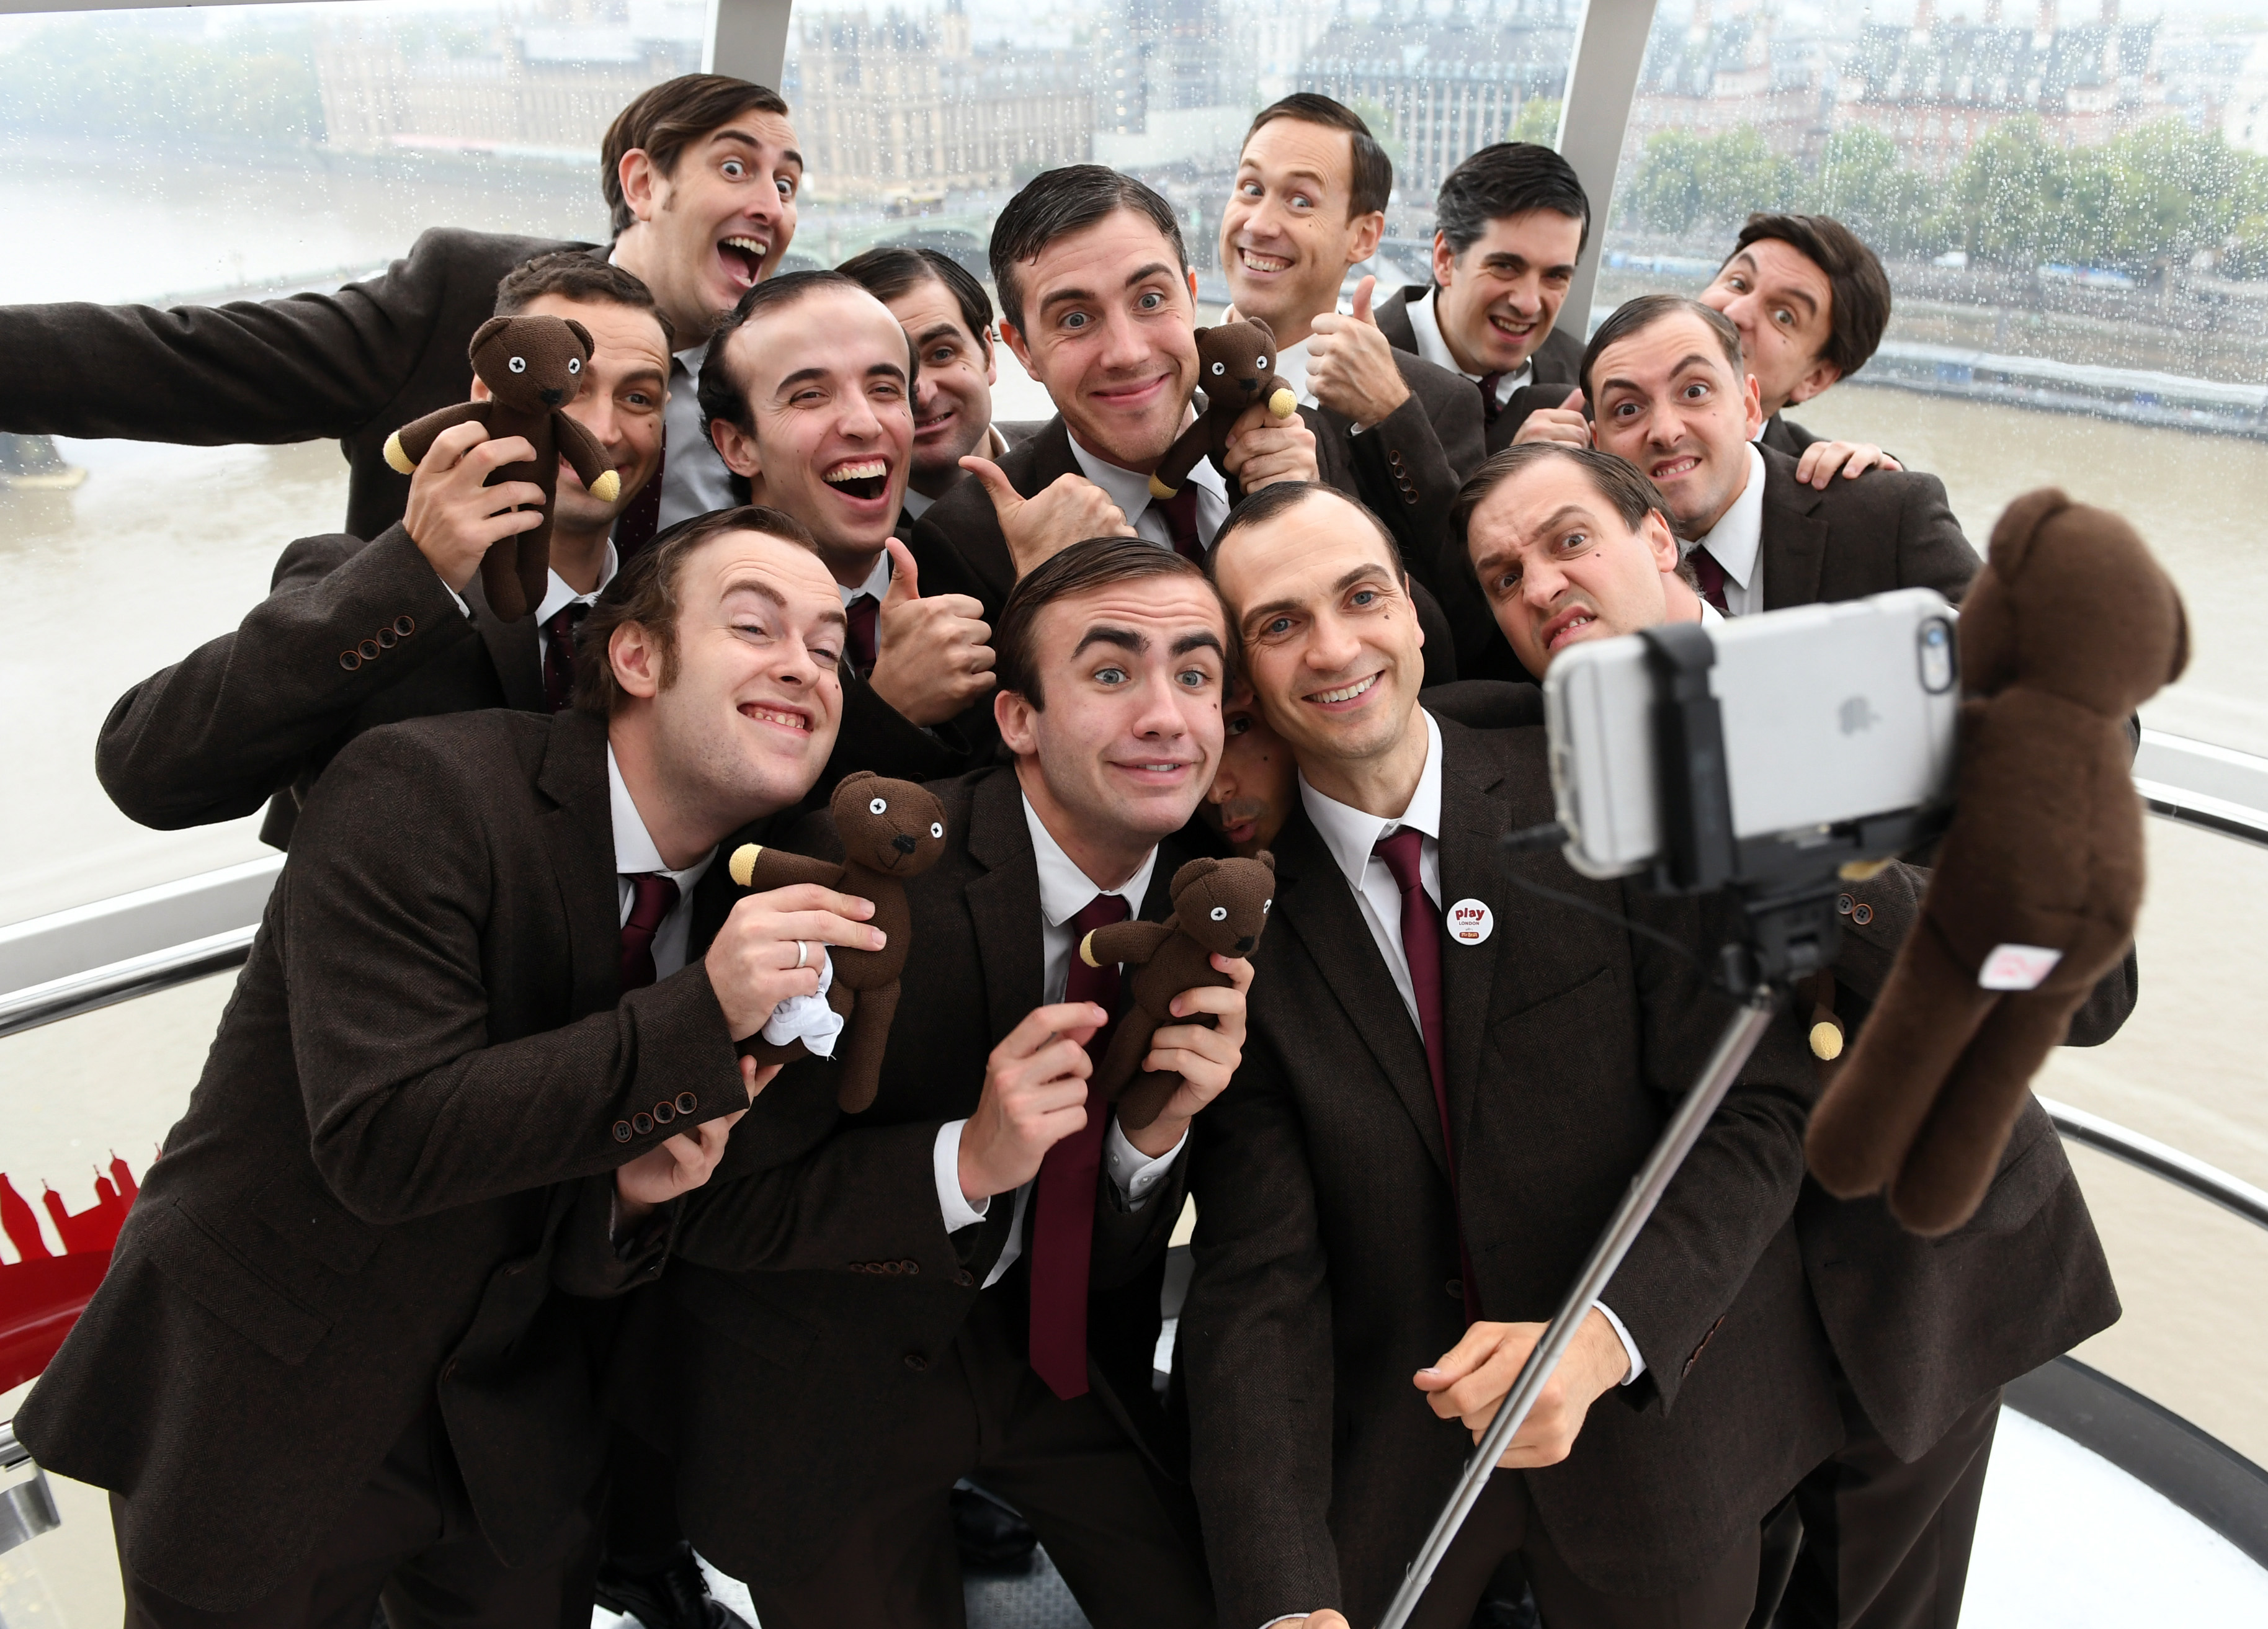 A group of men dressed as Mr Bean pose for a selfie photo in a pod on the London Eye with the Thames in the background